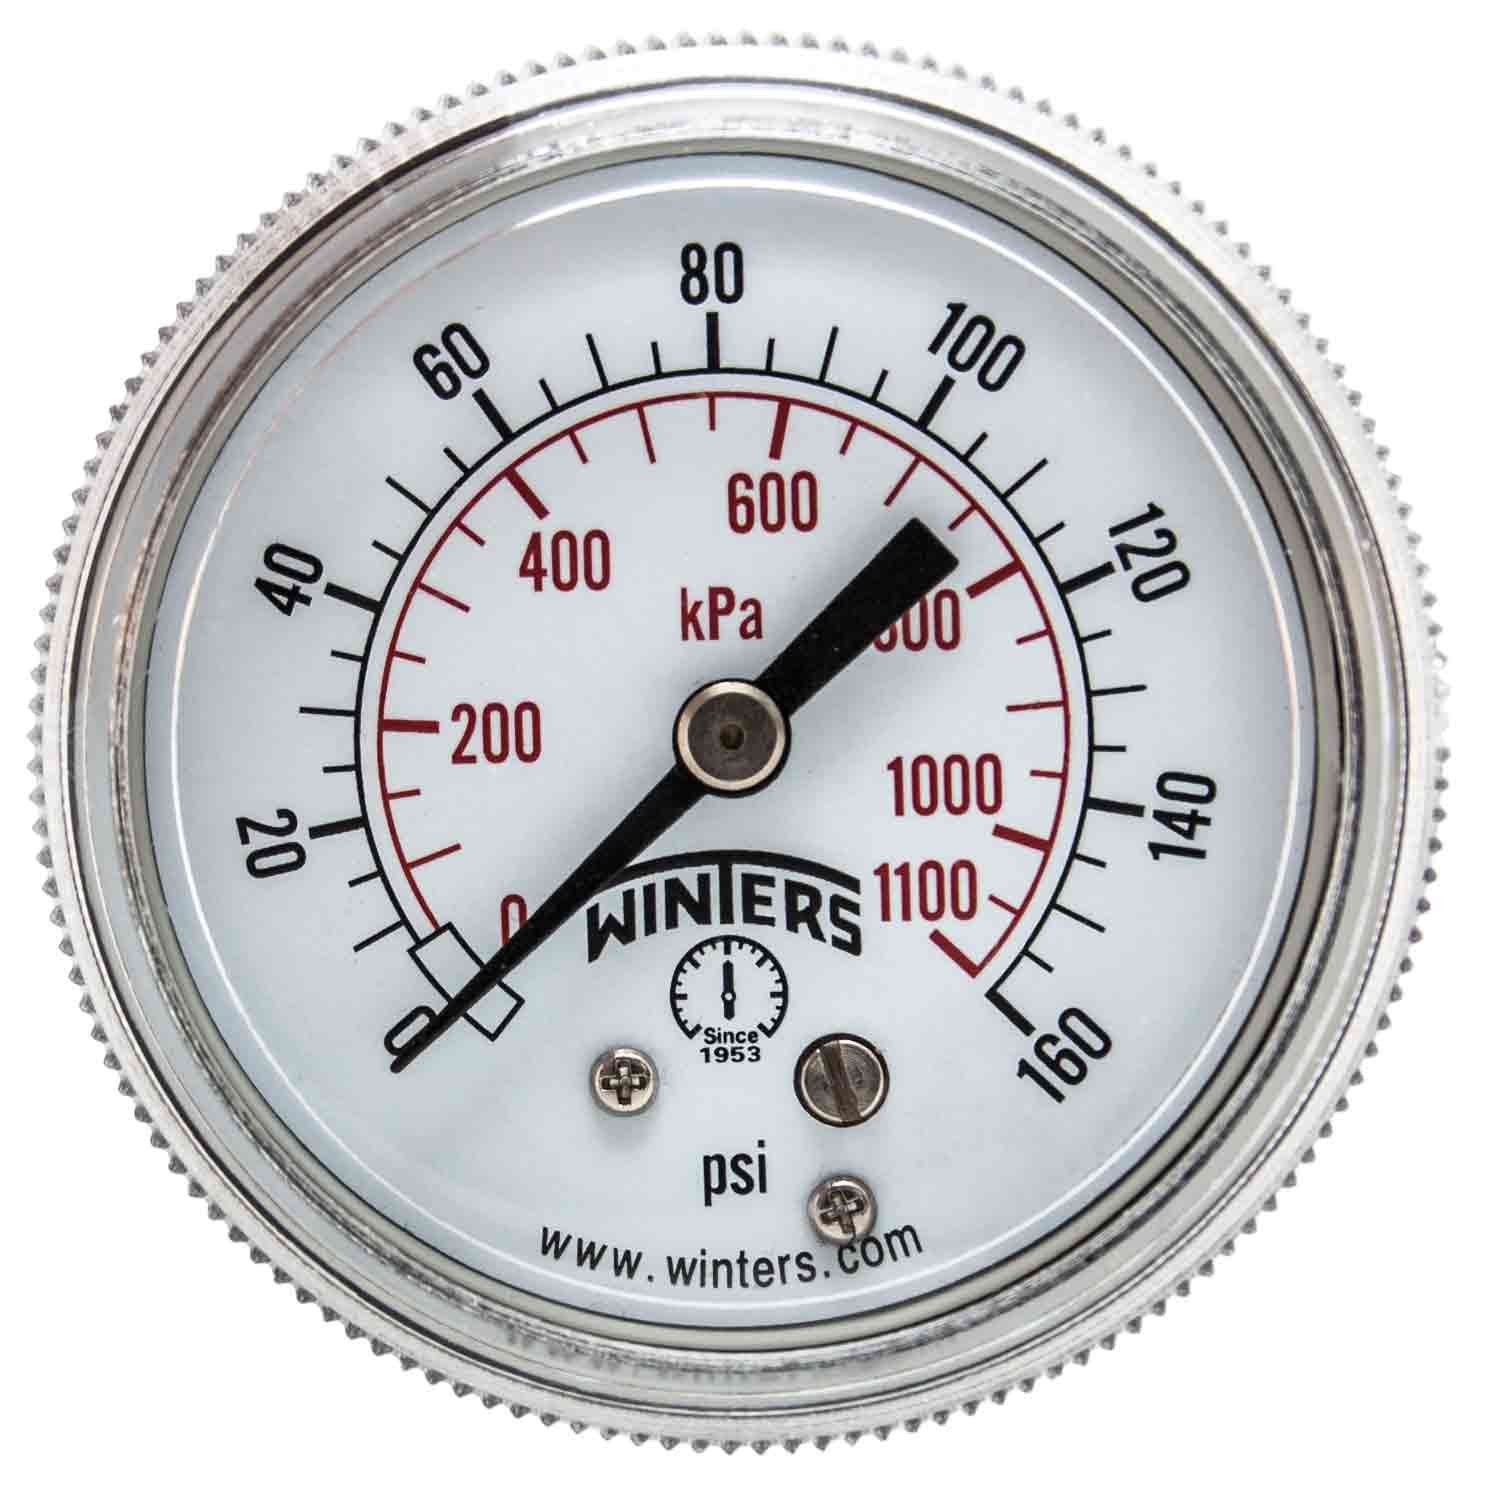 Winters P9S 90 Series Steel Dual Scale Pressure Gauge with Removable Lens, 0-160 psi/kpa, 2' Dial Display, +/-2-1-2% Accuracy, 1/4' NPT Center Back Mount 2 Dial Display 1/4 NPT Center Back Mount P9S901409